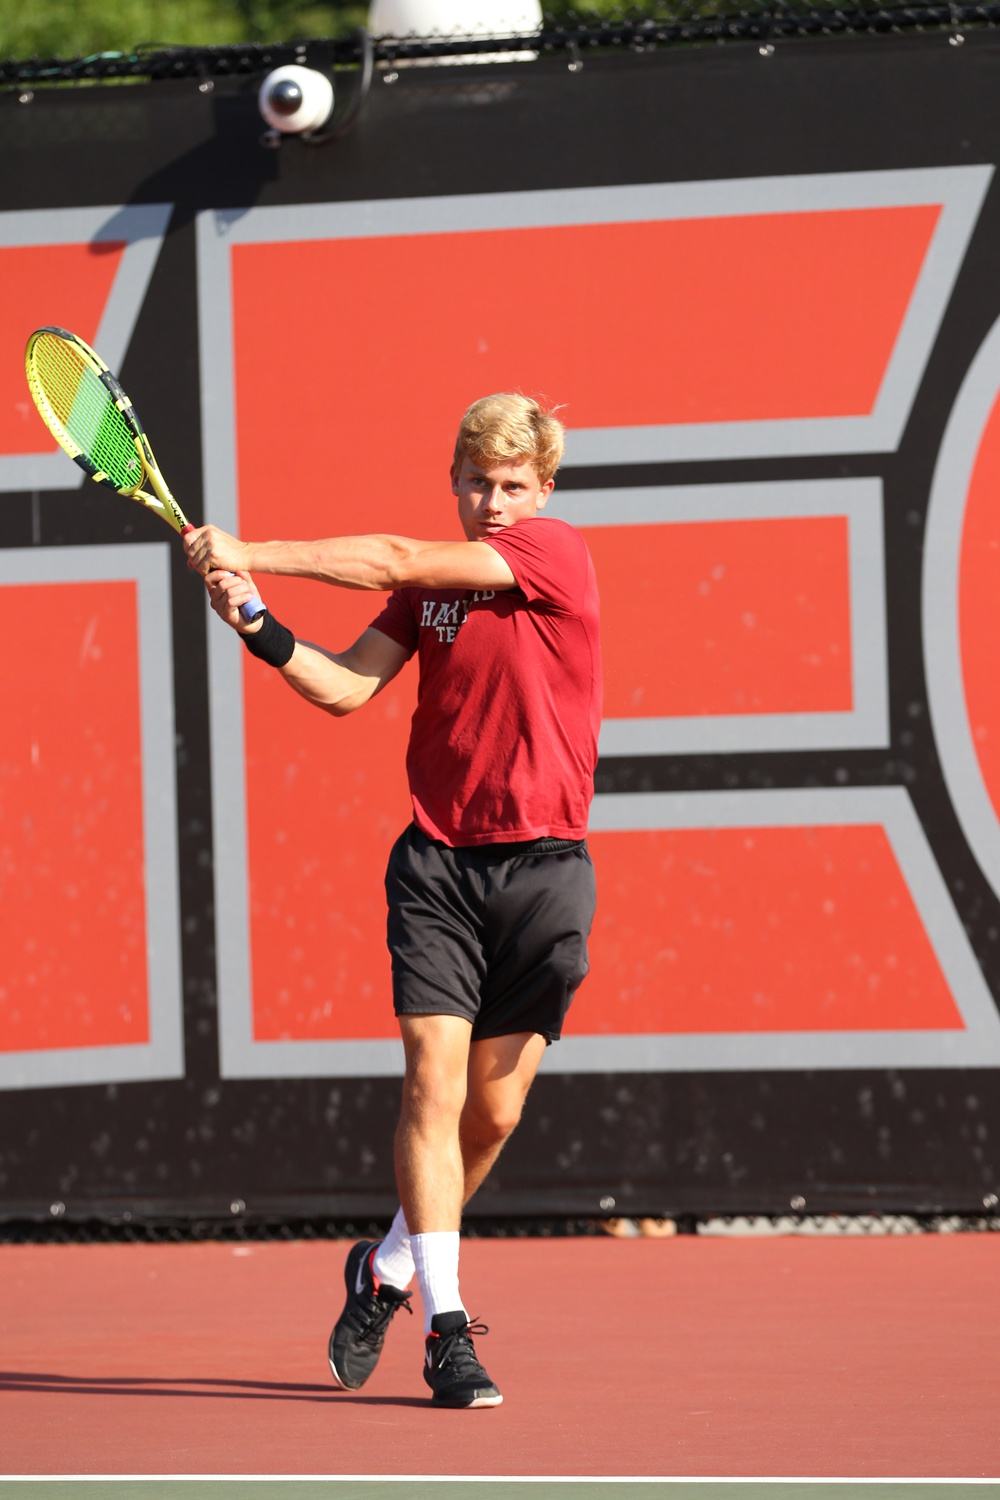 Junior Lane Leschly follows through on a backhand for Harvard Men's Tennis, a team he shares with his brother, Bo